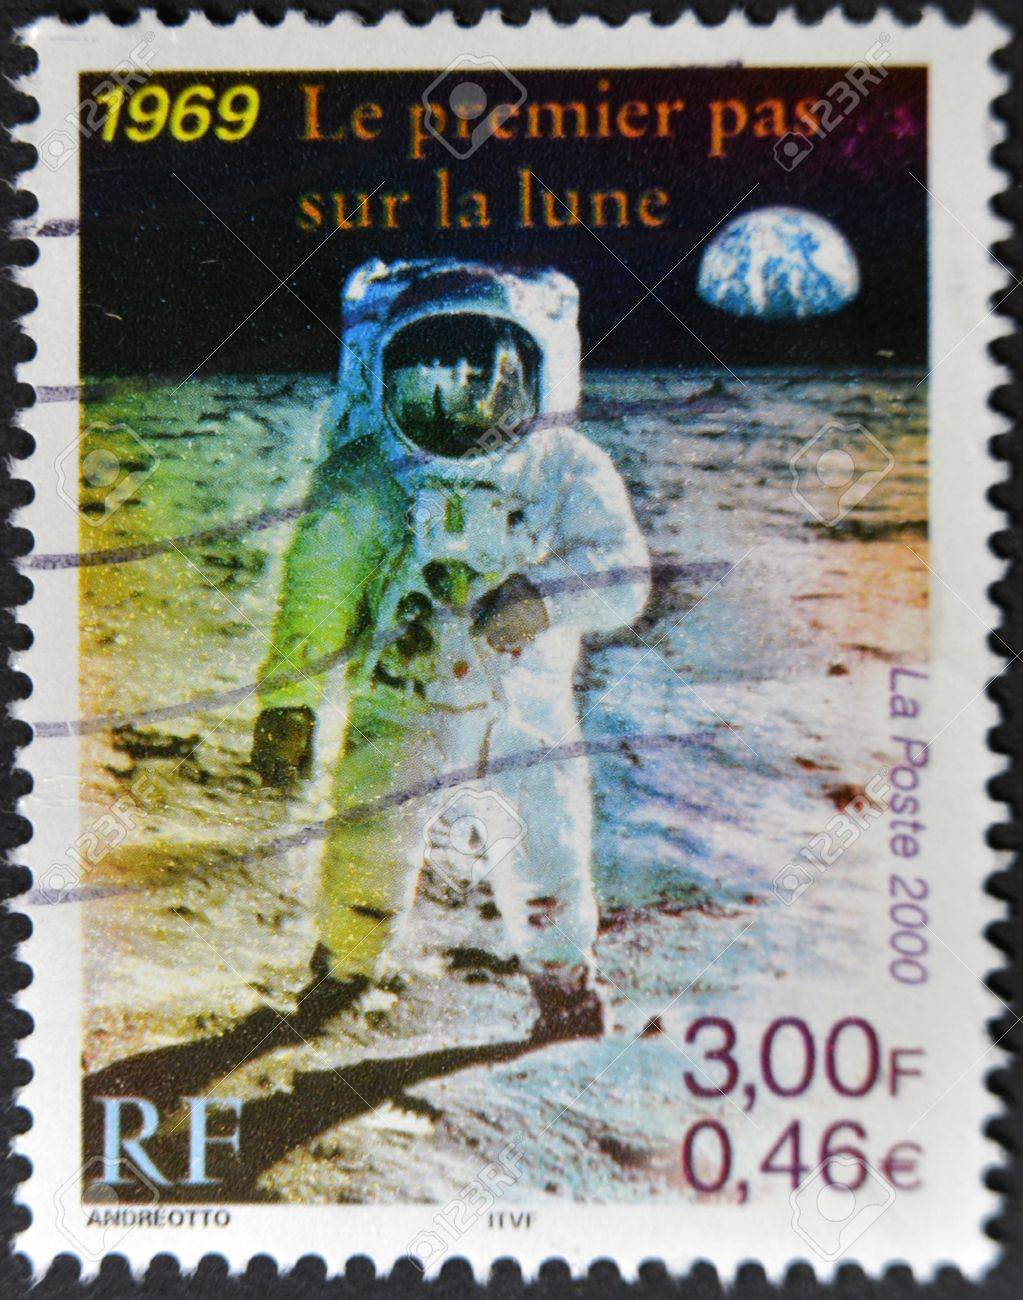 FRANCE - CIRCA 2000: A stamp printed in France shows the first